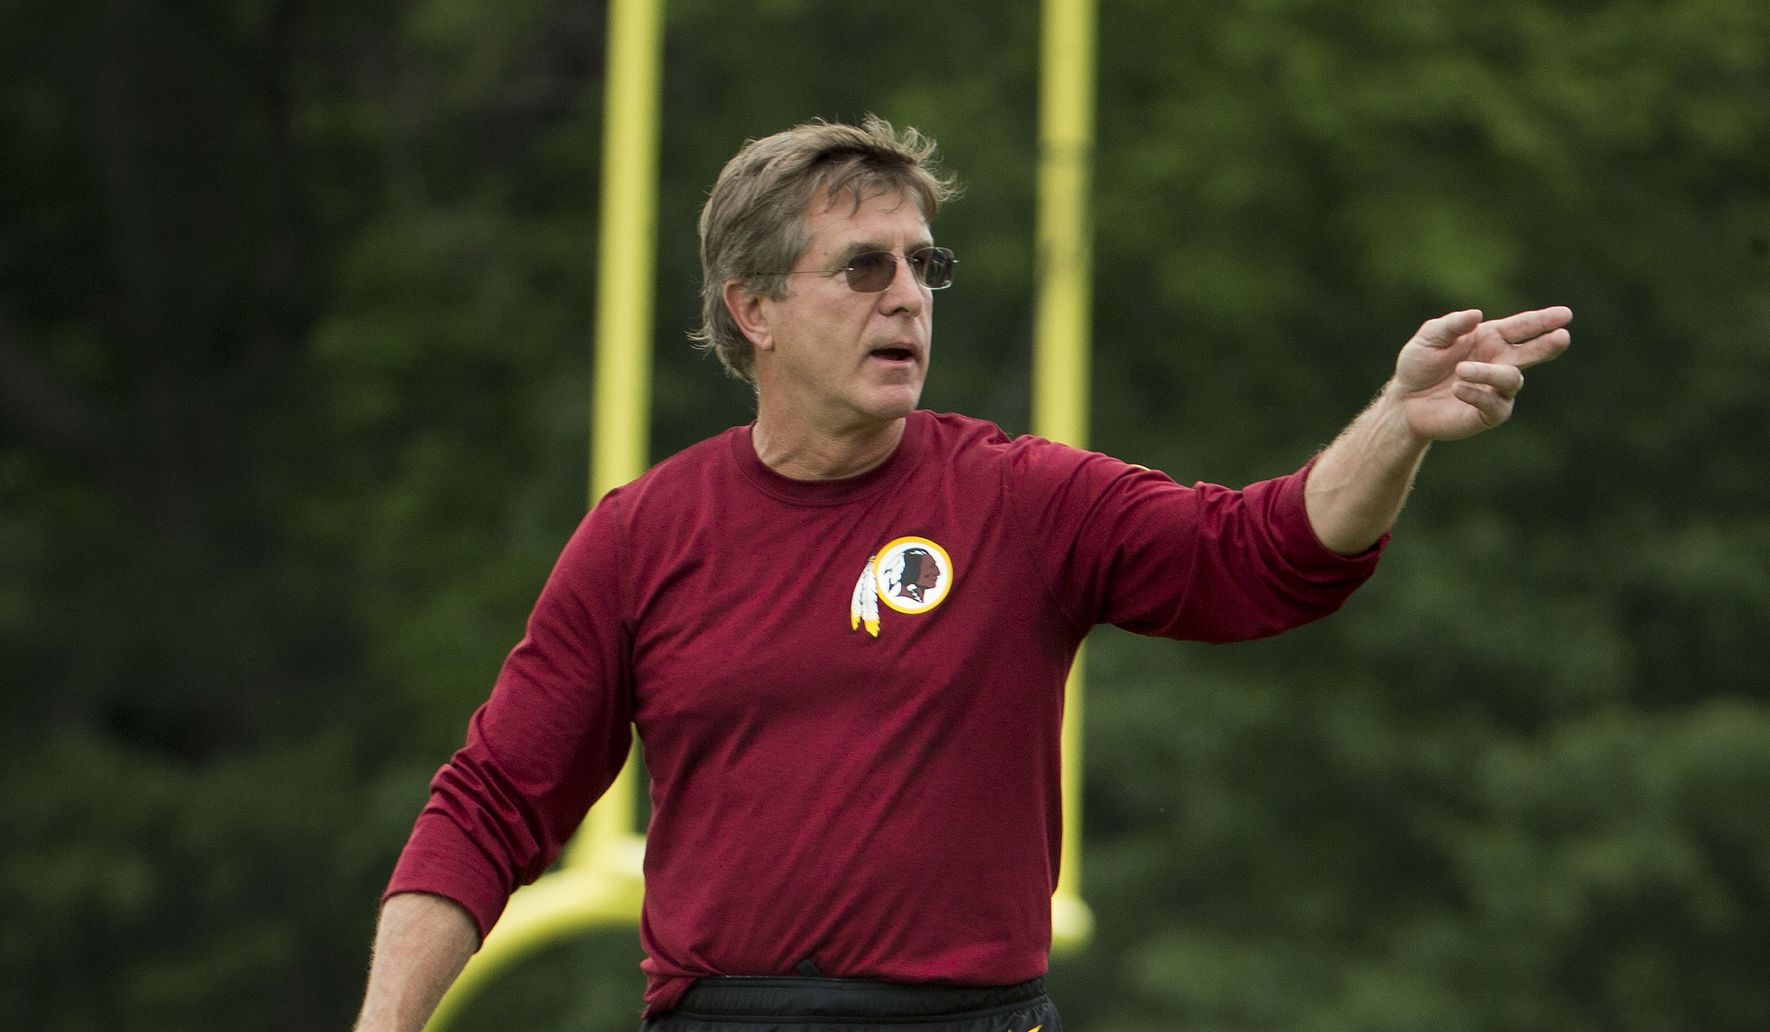 Who is Bill Callahan? A look at the Redskins' new interim coach